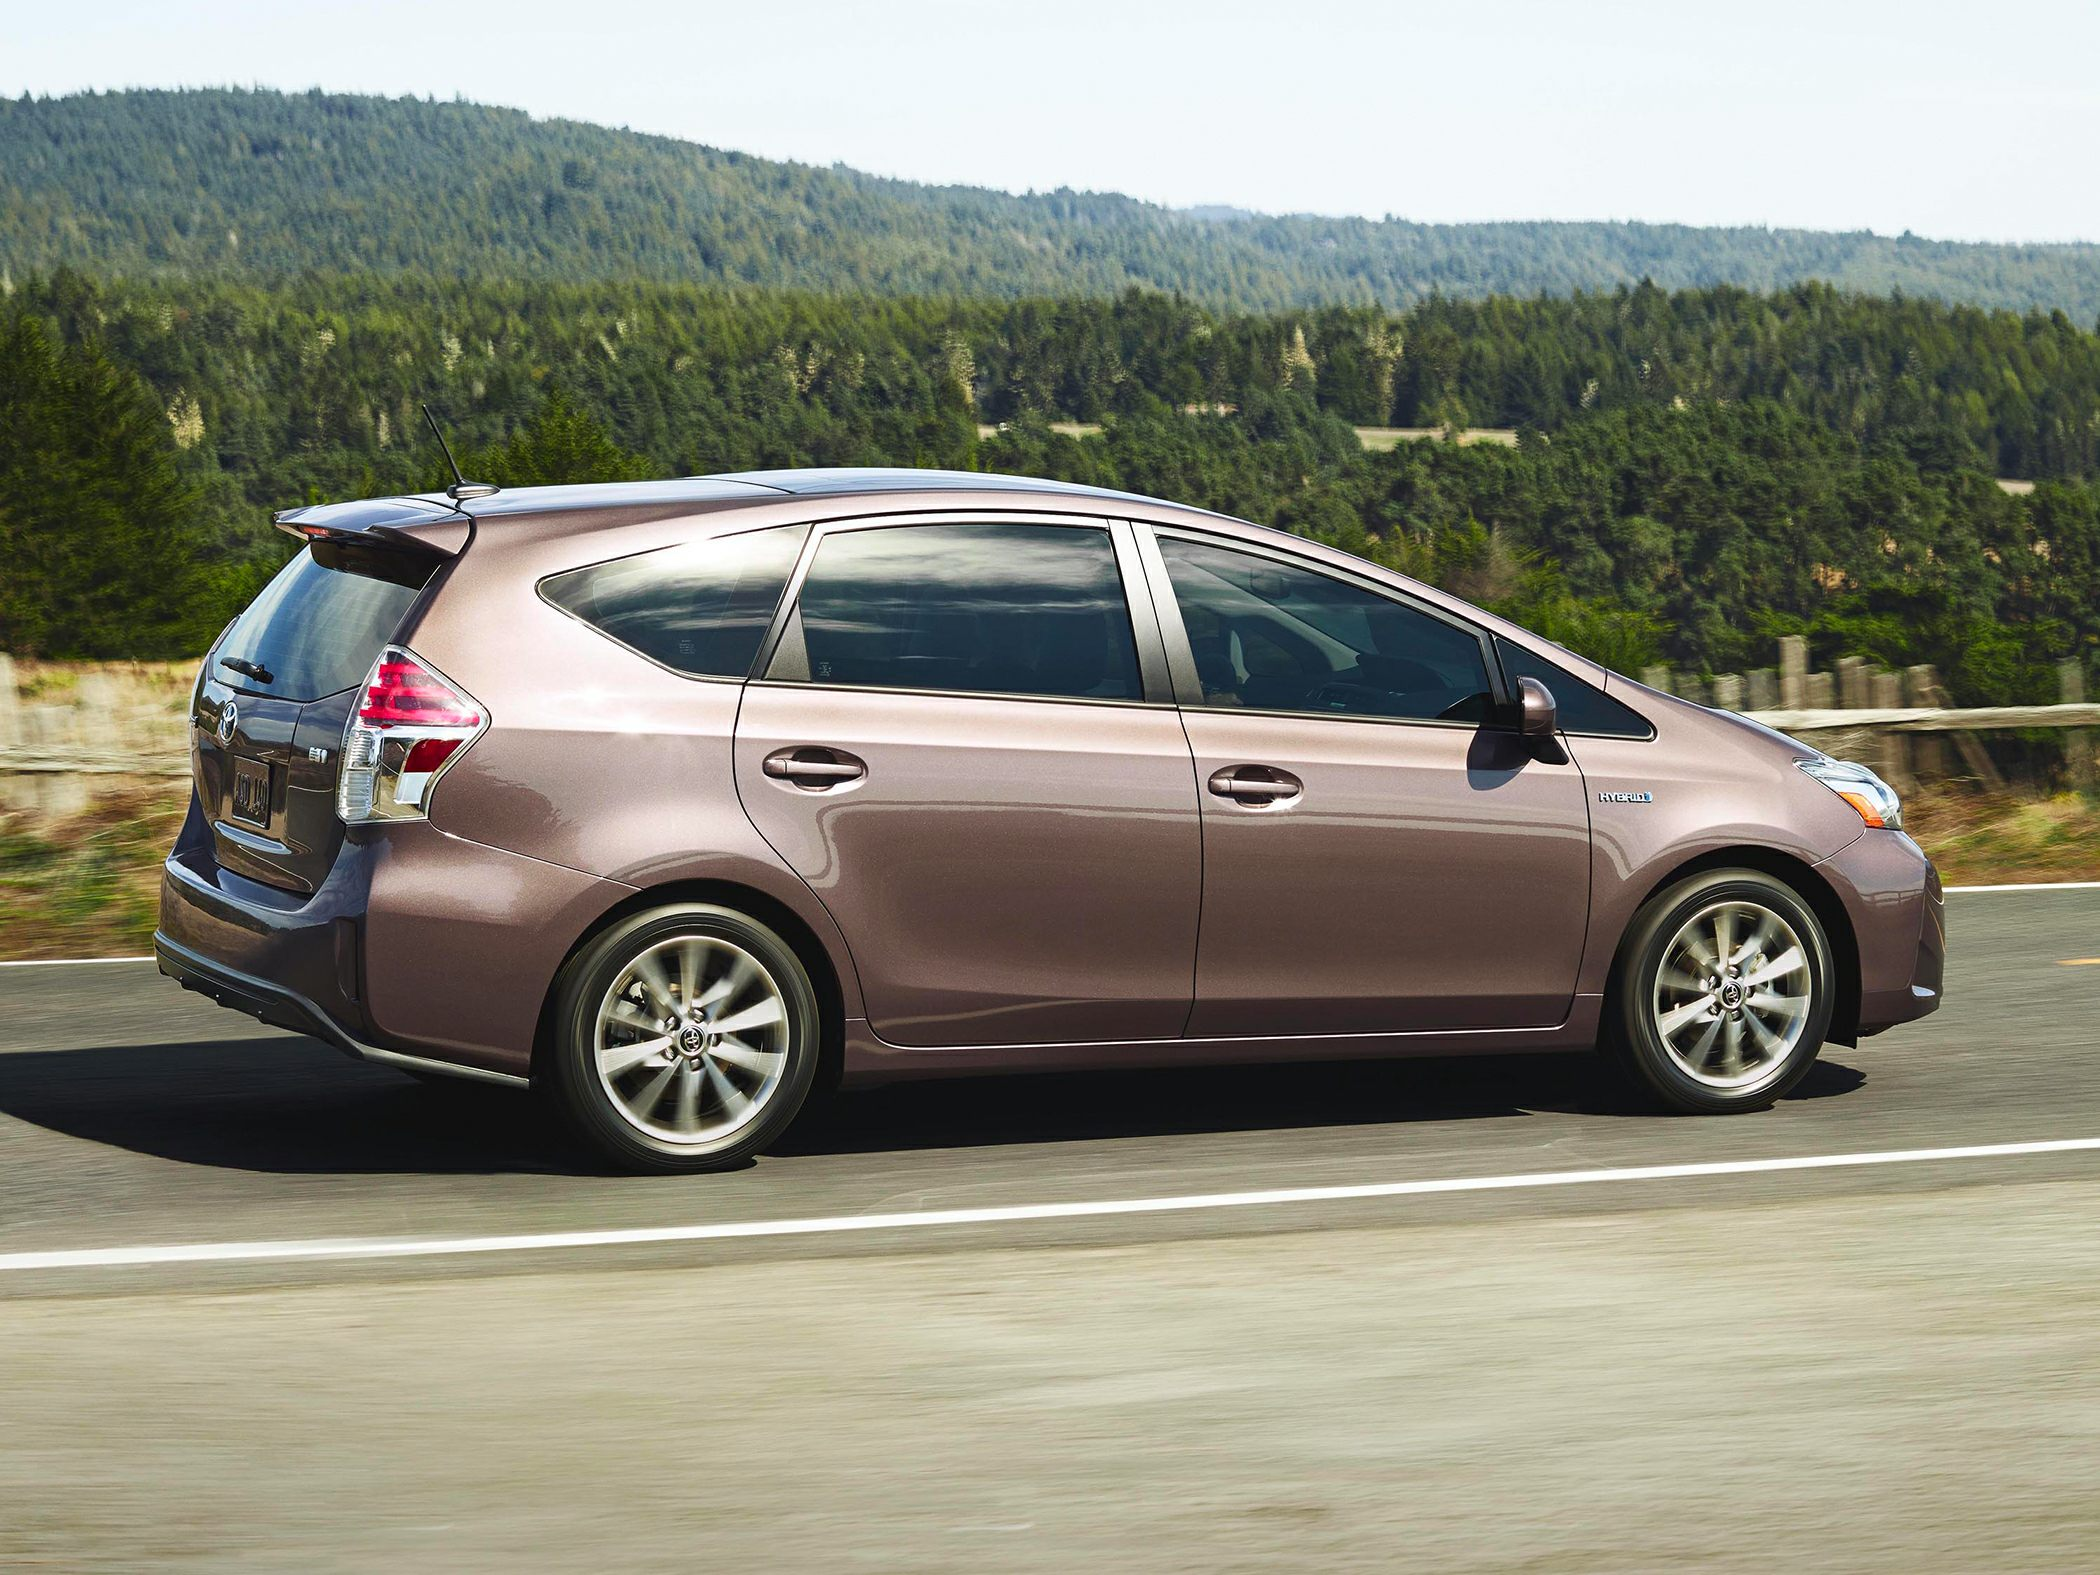 2017 toyota prius v deals prices incentives leases overview carsdirect. Black Bedroom Furniture Sets. Home Design Ideas